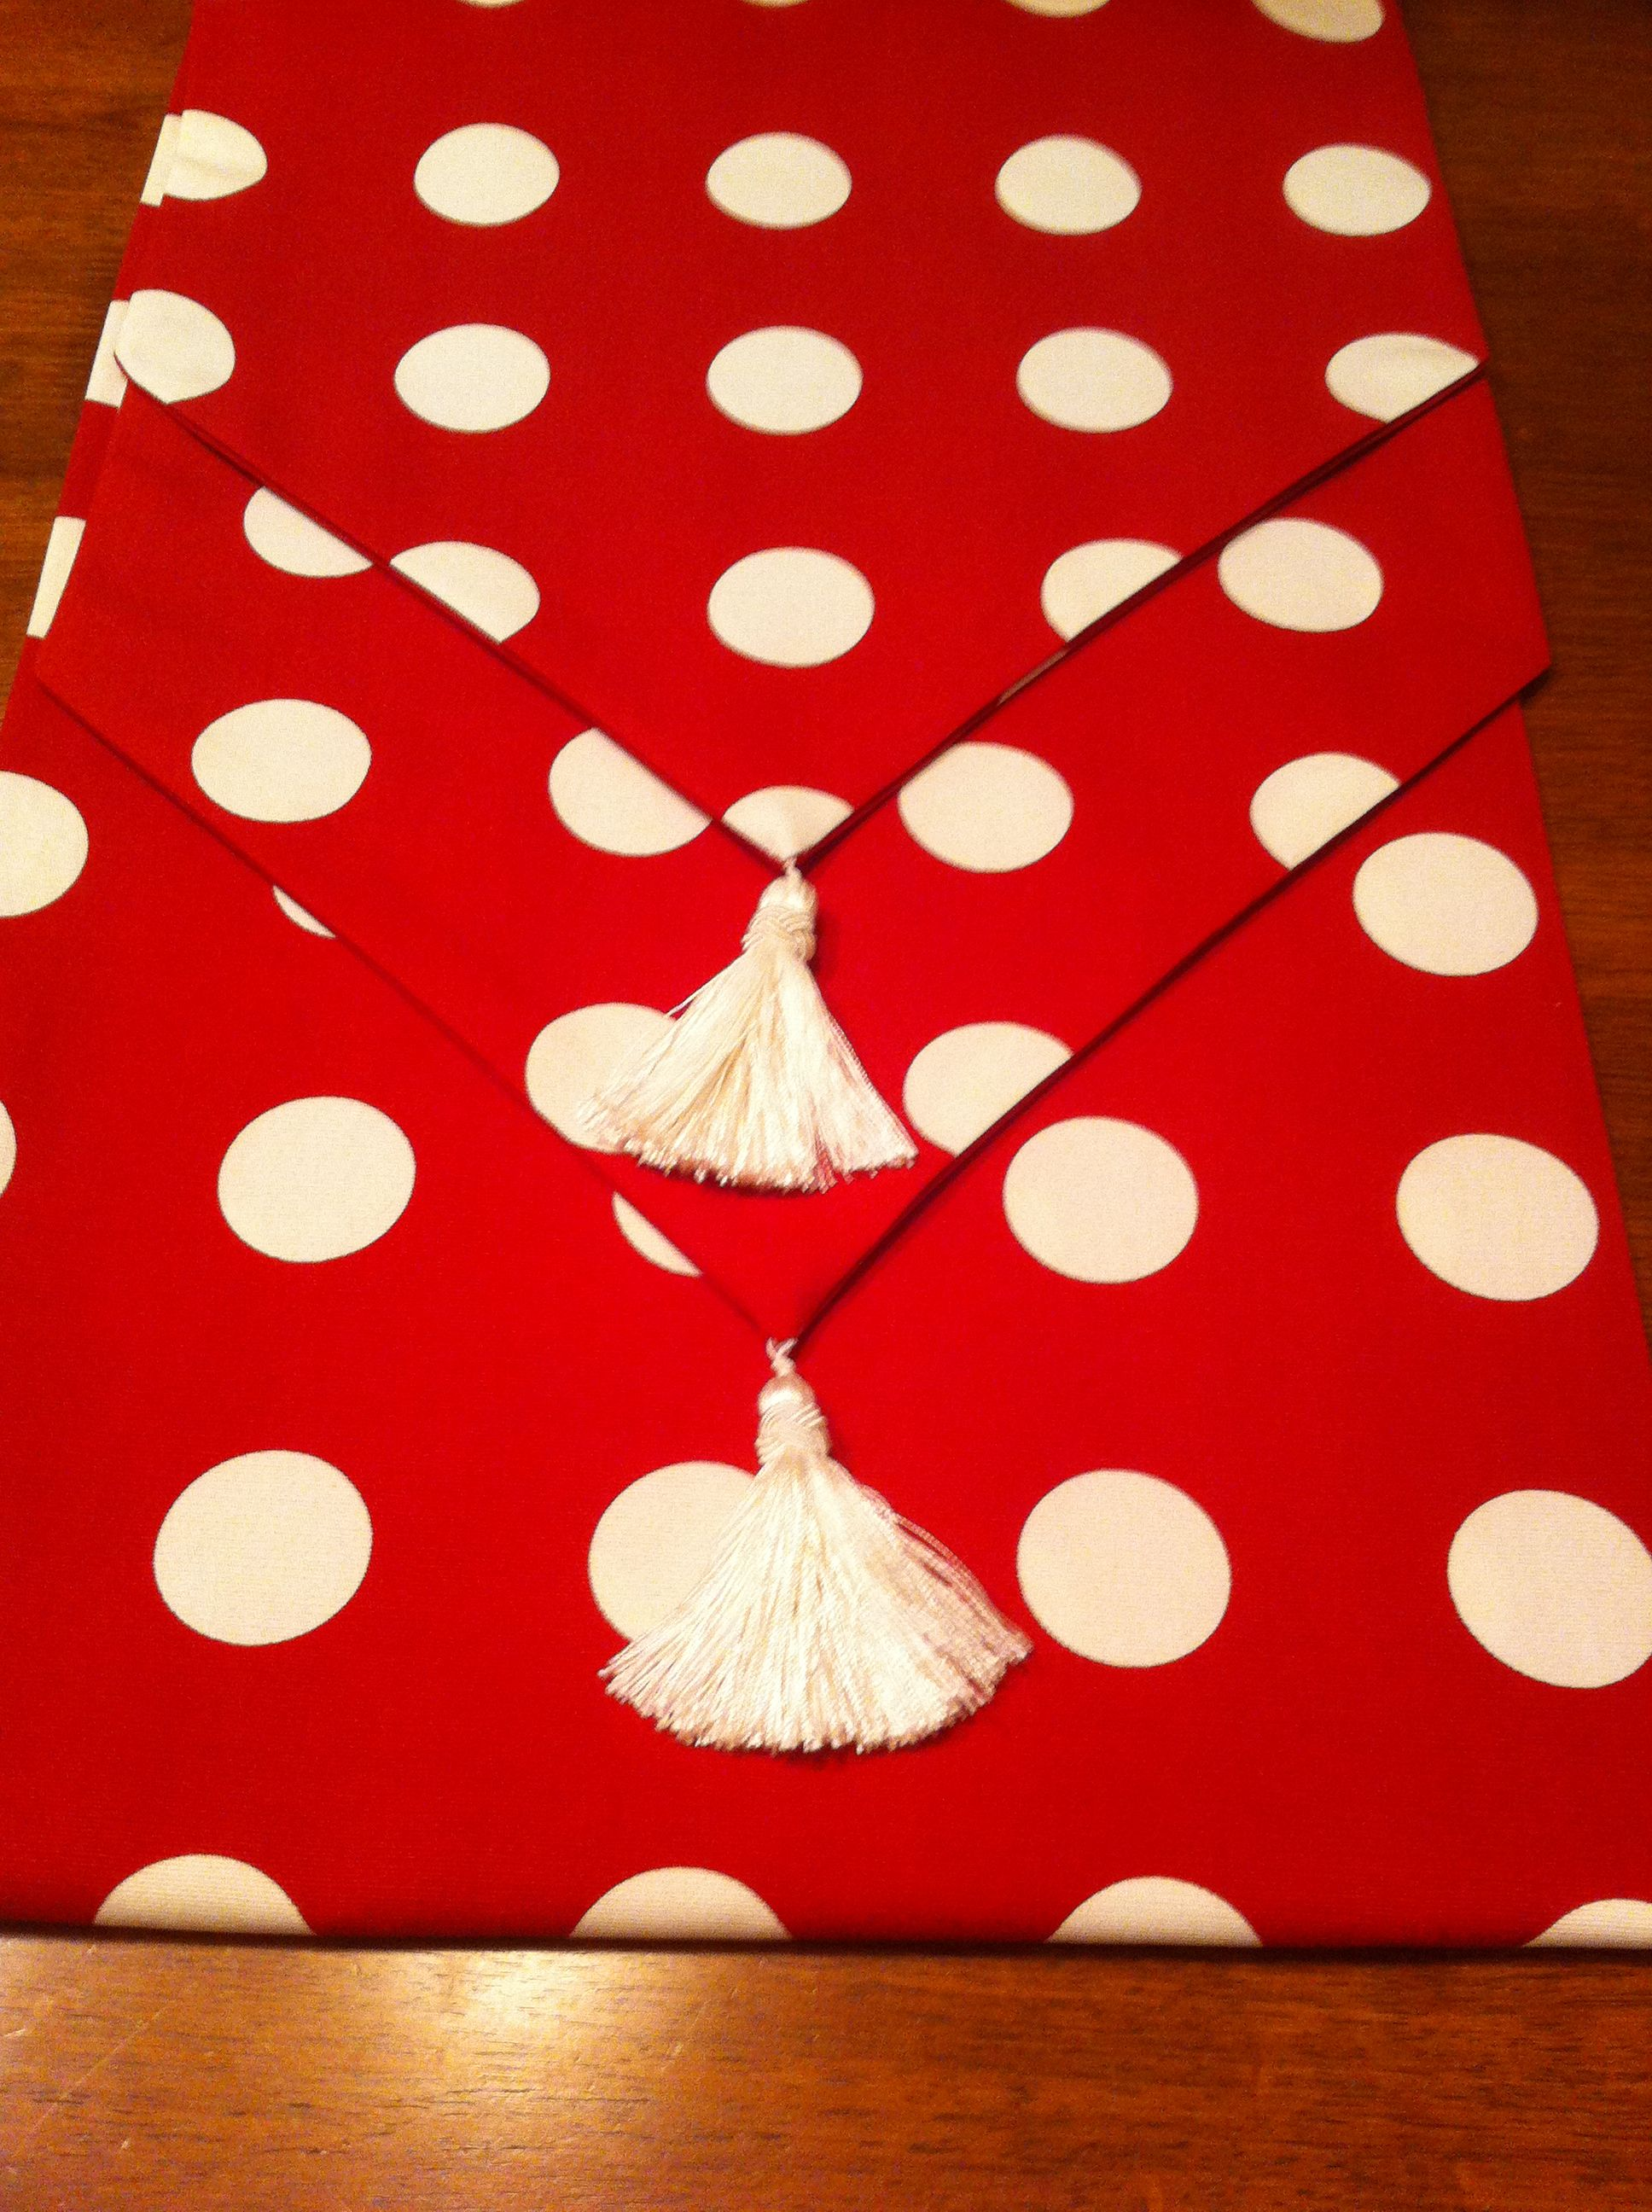 Polka dot with a tassel tail!